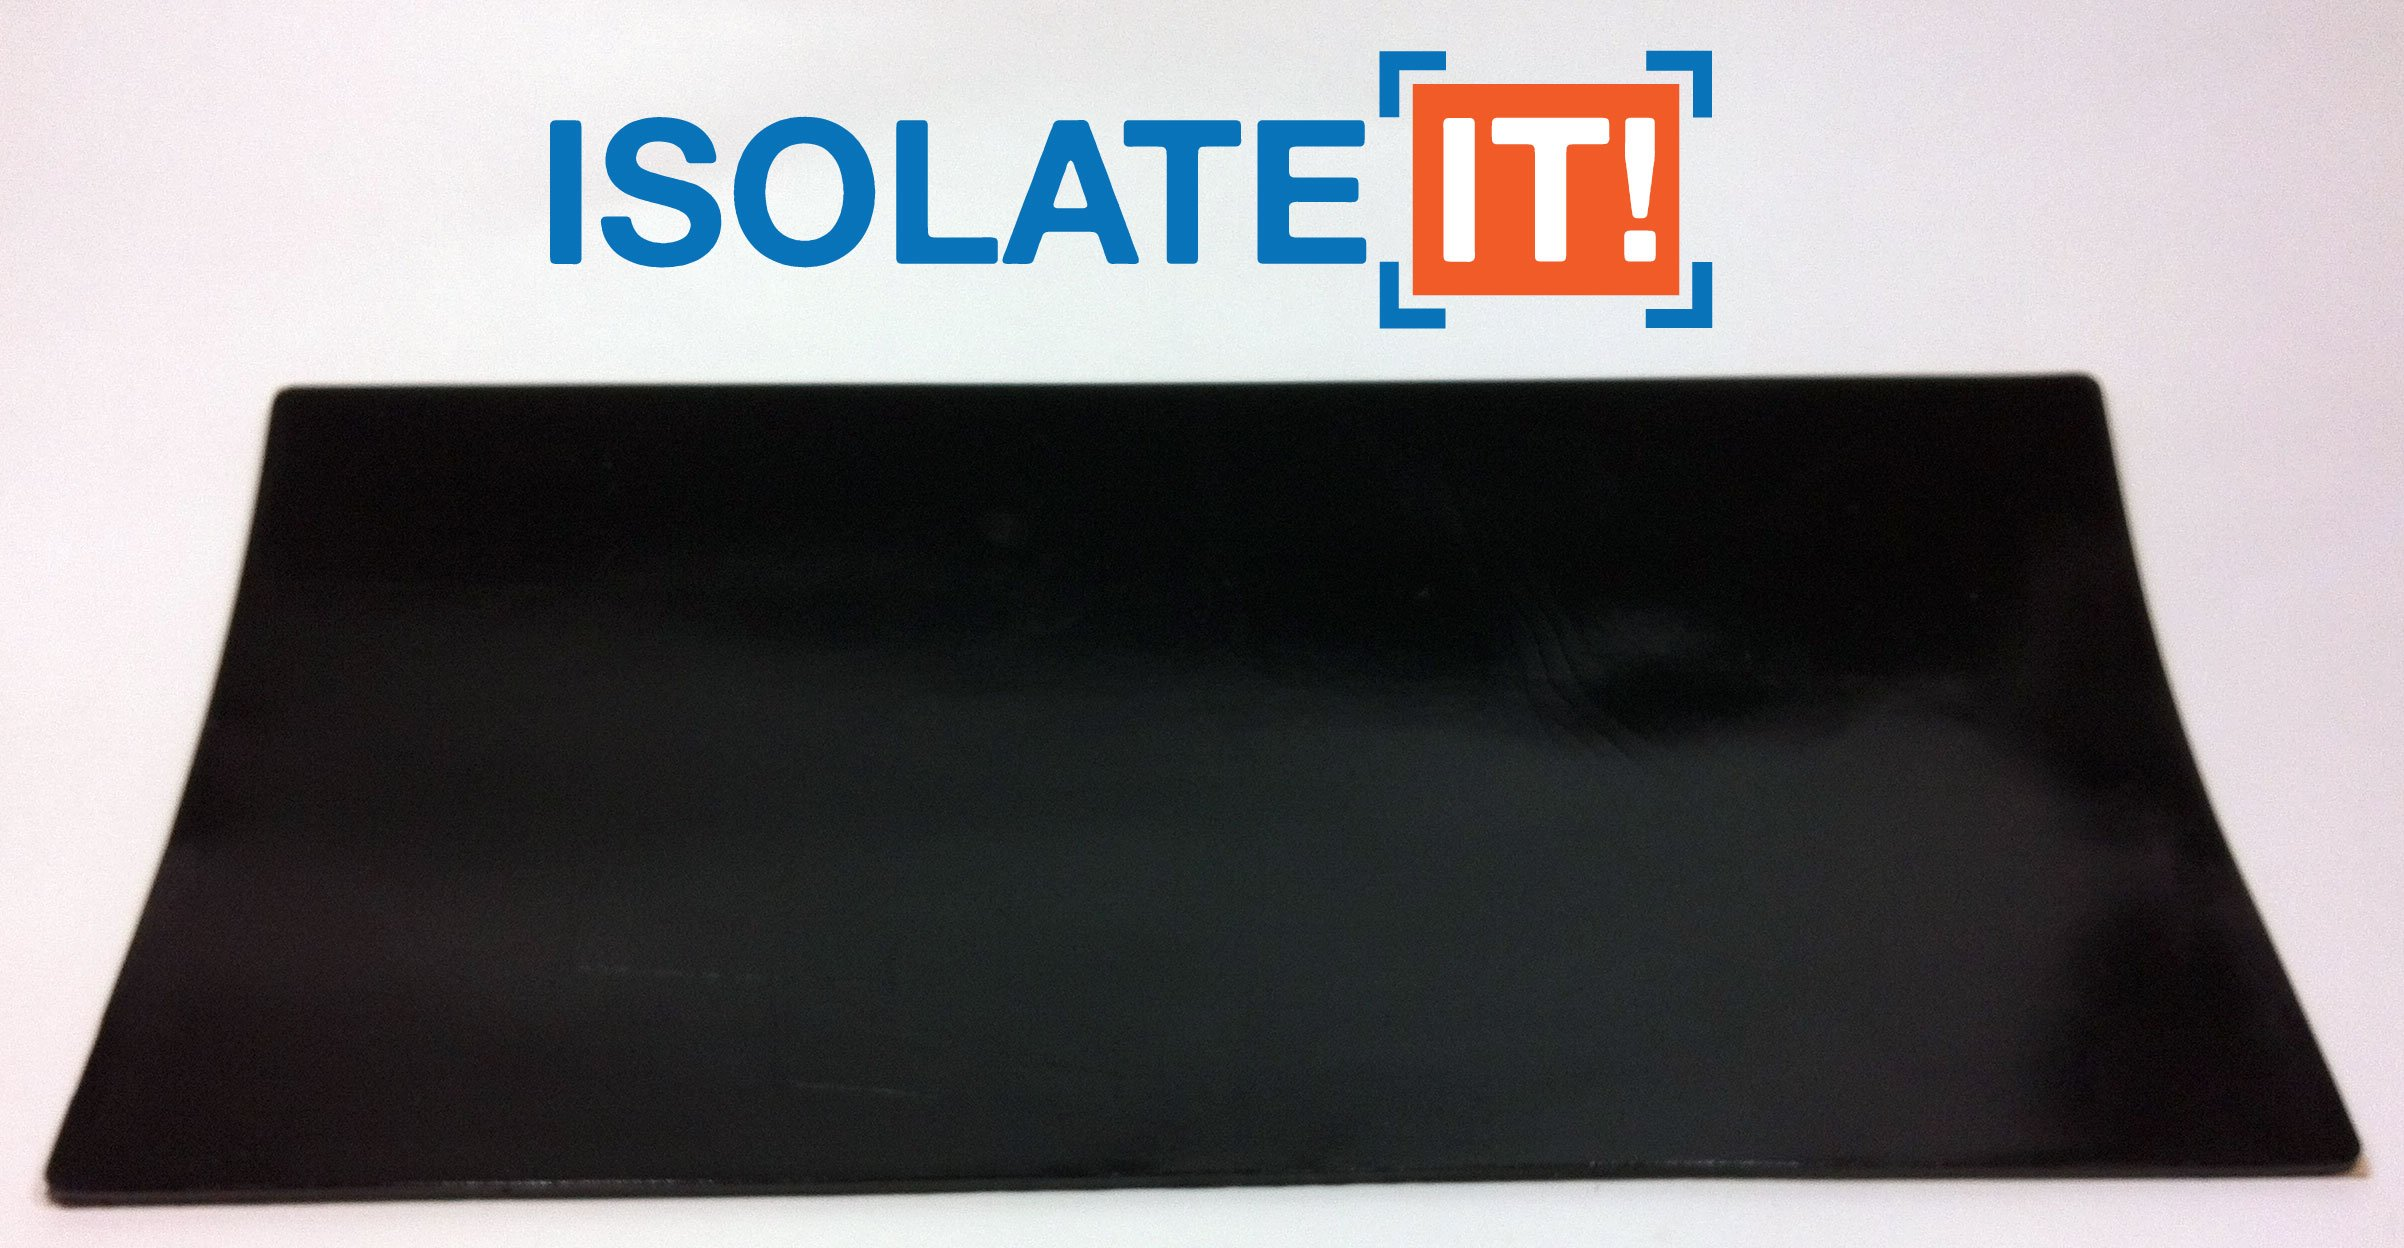 Isolate It!: Sorbothane Acoustic & Vibration Damping Film 60 Duro with 3M Adhesive Backing (0.188 x 6 x 12in)